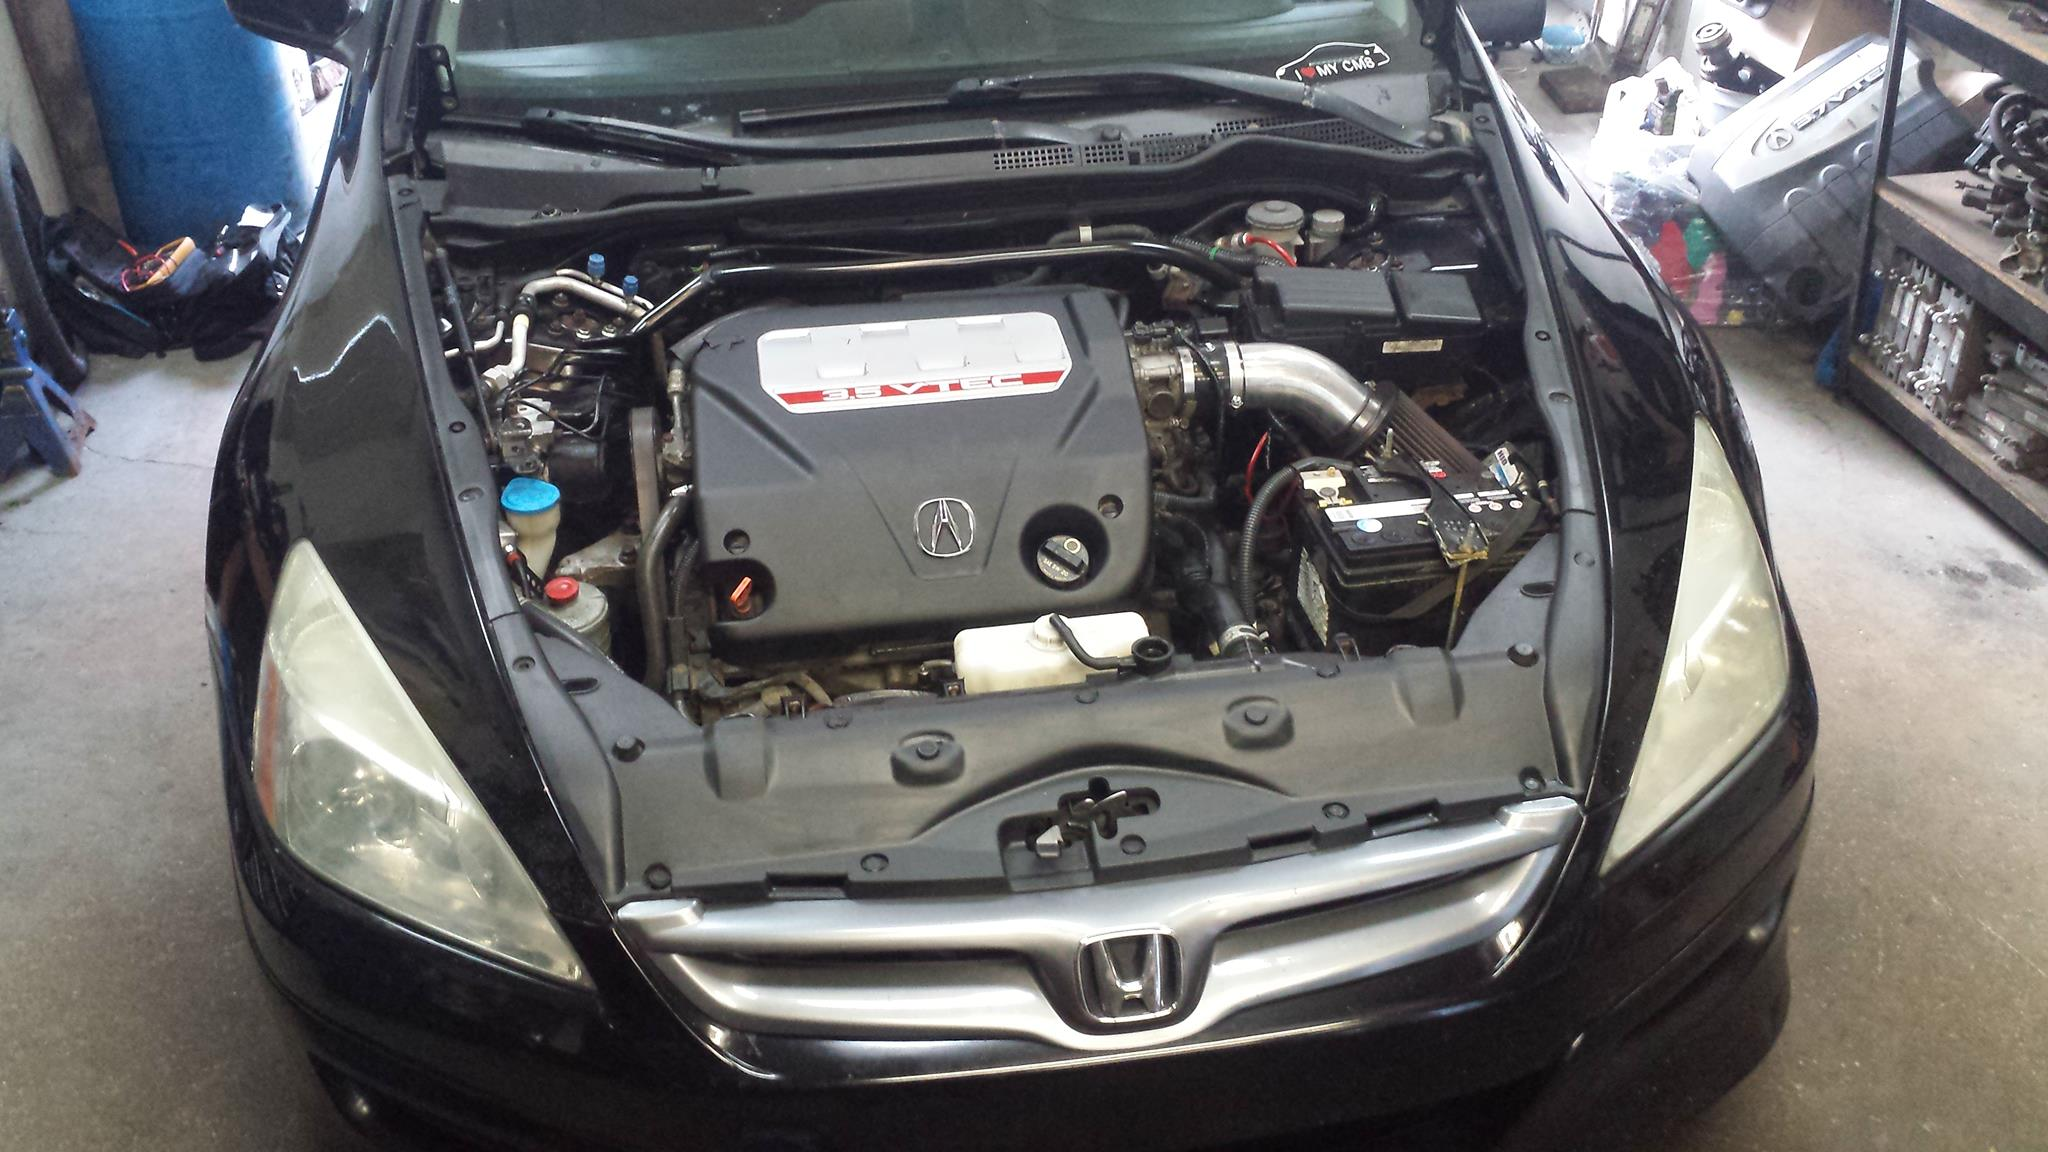 2006-accord-j35a8-2008-acura-tl-type-s-5